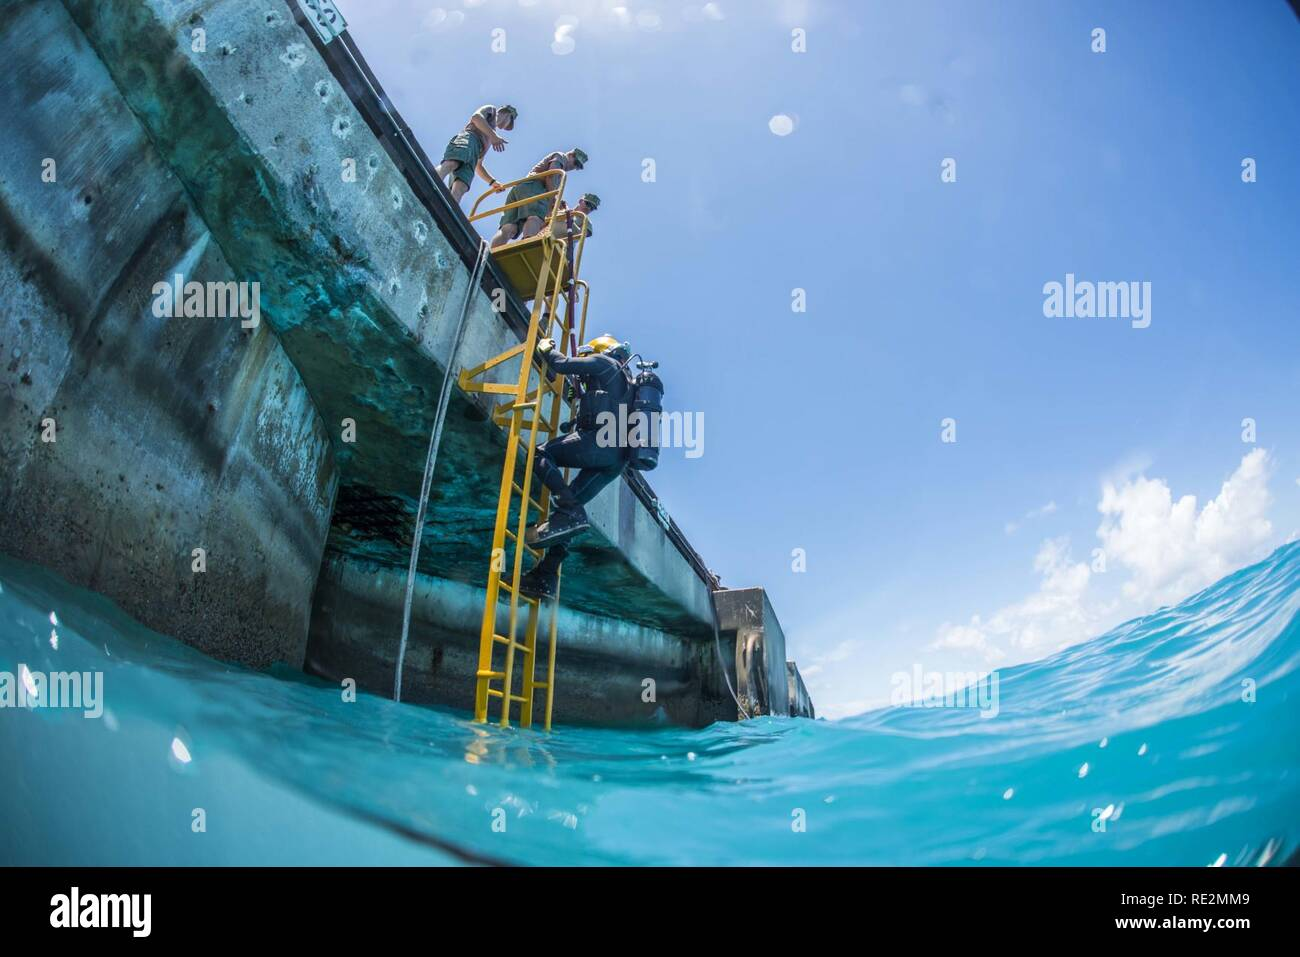 Chief Petty Officer Jesse Hamblin, assigned to Underwater Construction Team (UCT) 2's Construction Dive Detachment Bravo (CDDB), descends the diving ladder while conducting diving operations in Diego Garcia, British Indian Ocean Territory, Nov. 8, 2016.  CDDB is performing precision underwater demolition and light salvage to remove obstructions from Diego Garcia's deep draft wharf. CDDB is on the third stop of their deployment, where they are conducting inspection, maintenance, and repair of various underwater and waterfront facilities while under Commander, Task Force (CTF) 75, the primary ex Stock Photo